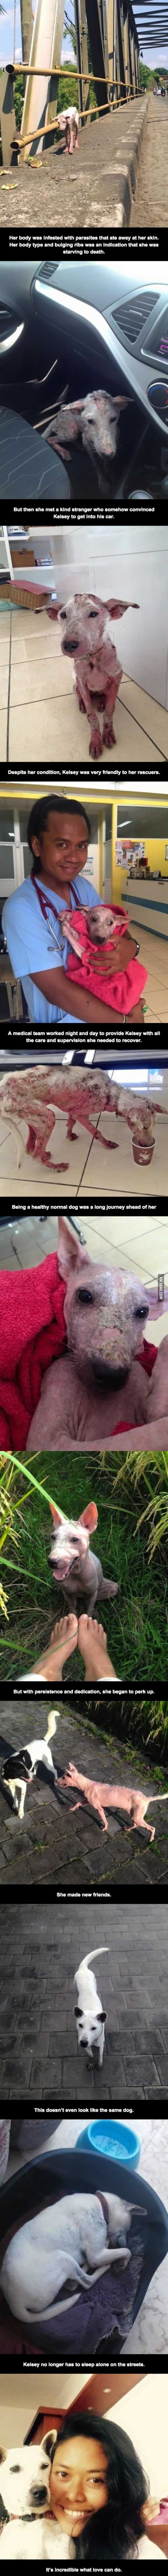 Animal rescues are one of the few good things about people.